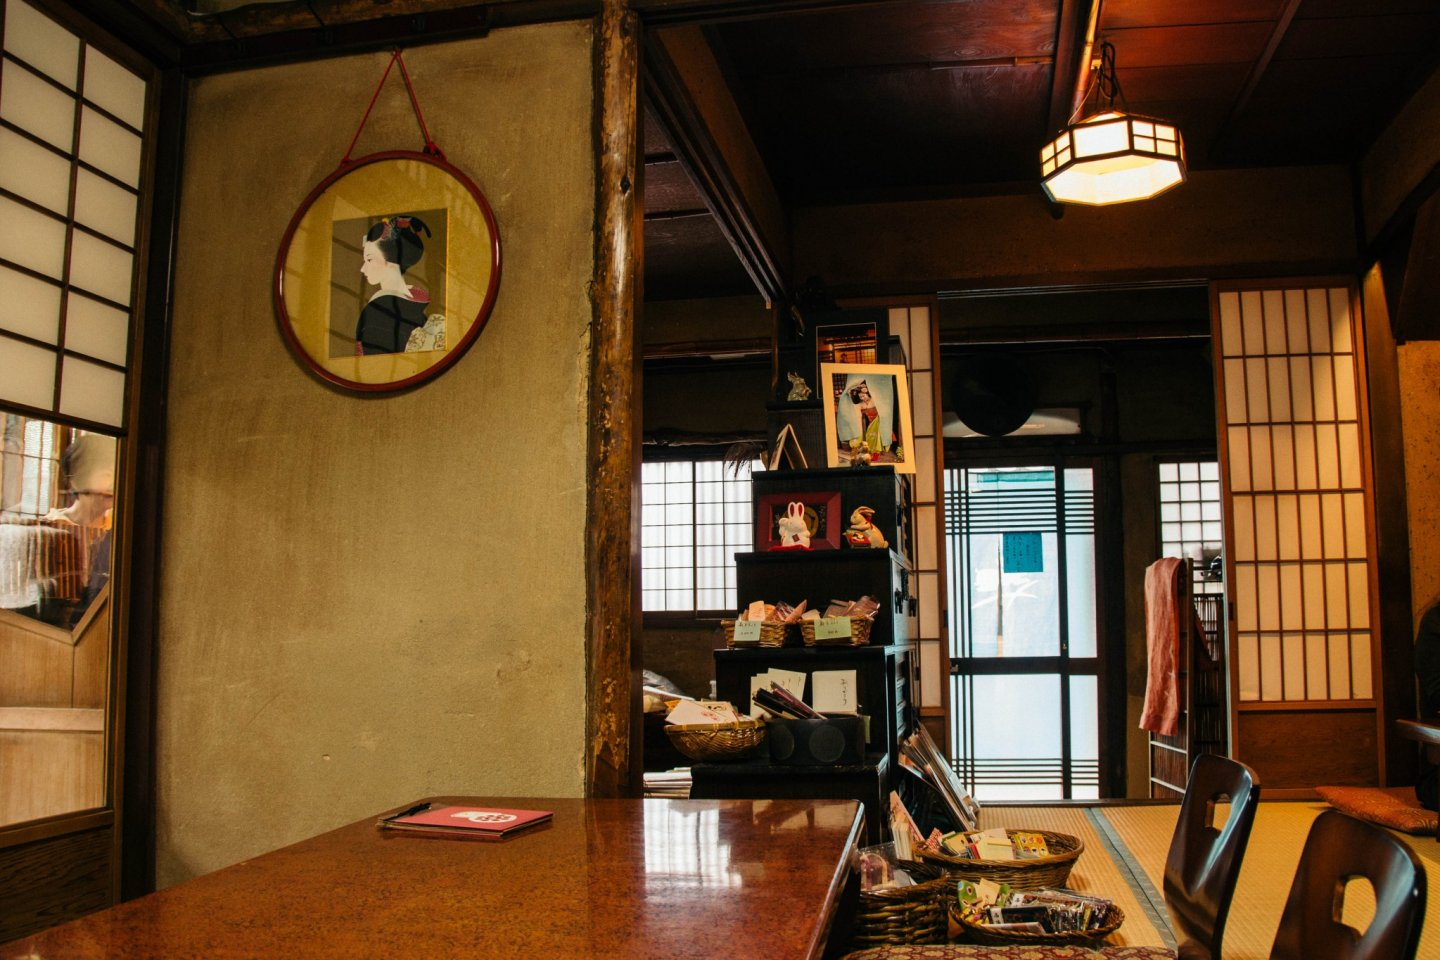 Sit on the Tatami mat or even at the seats by the bar.